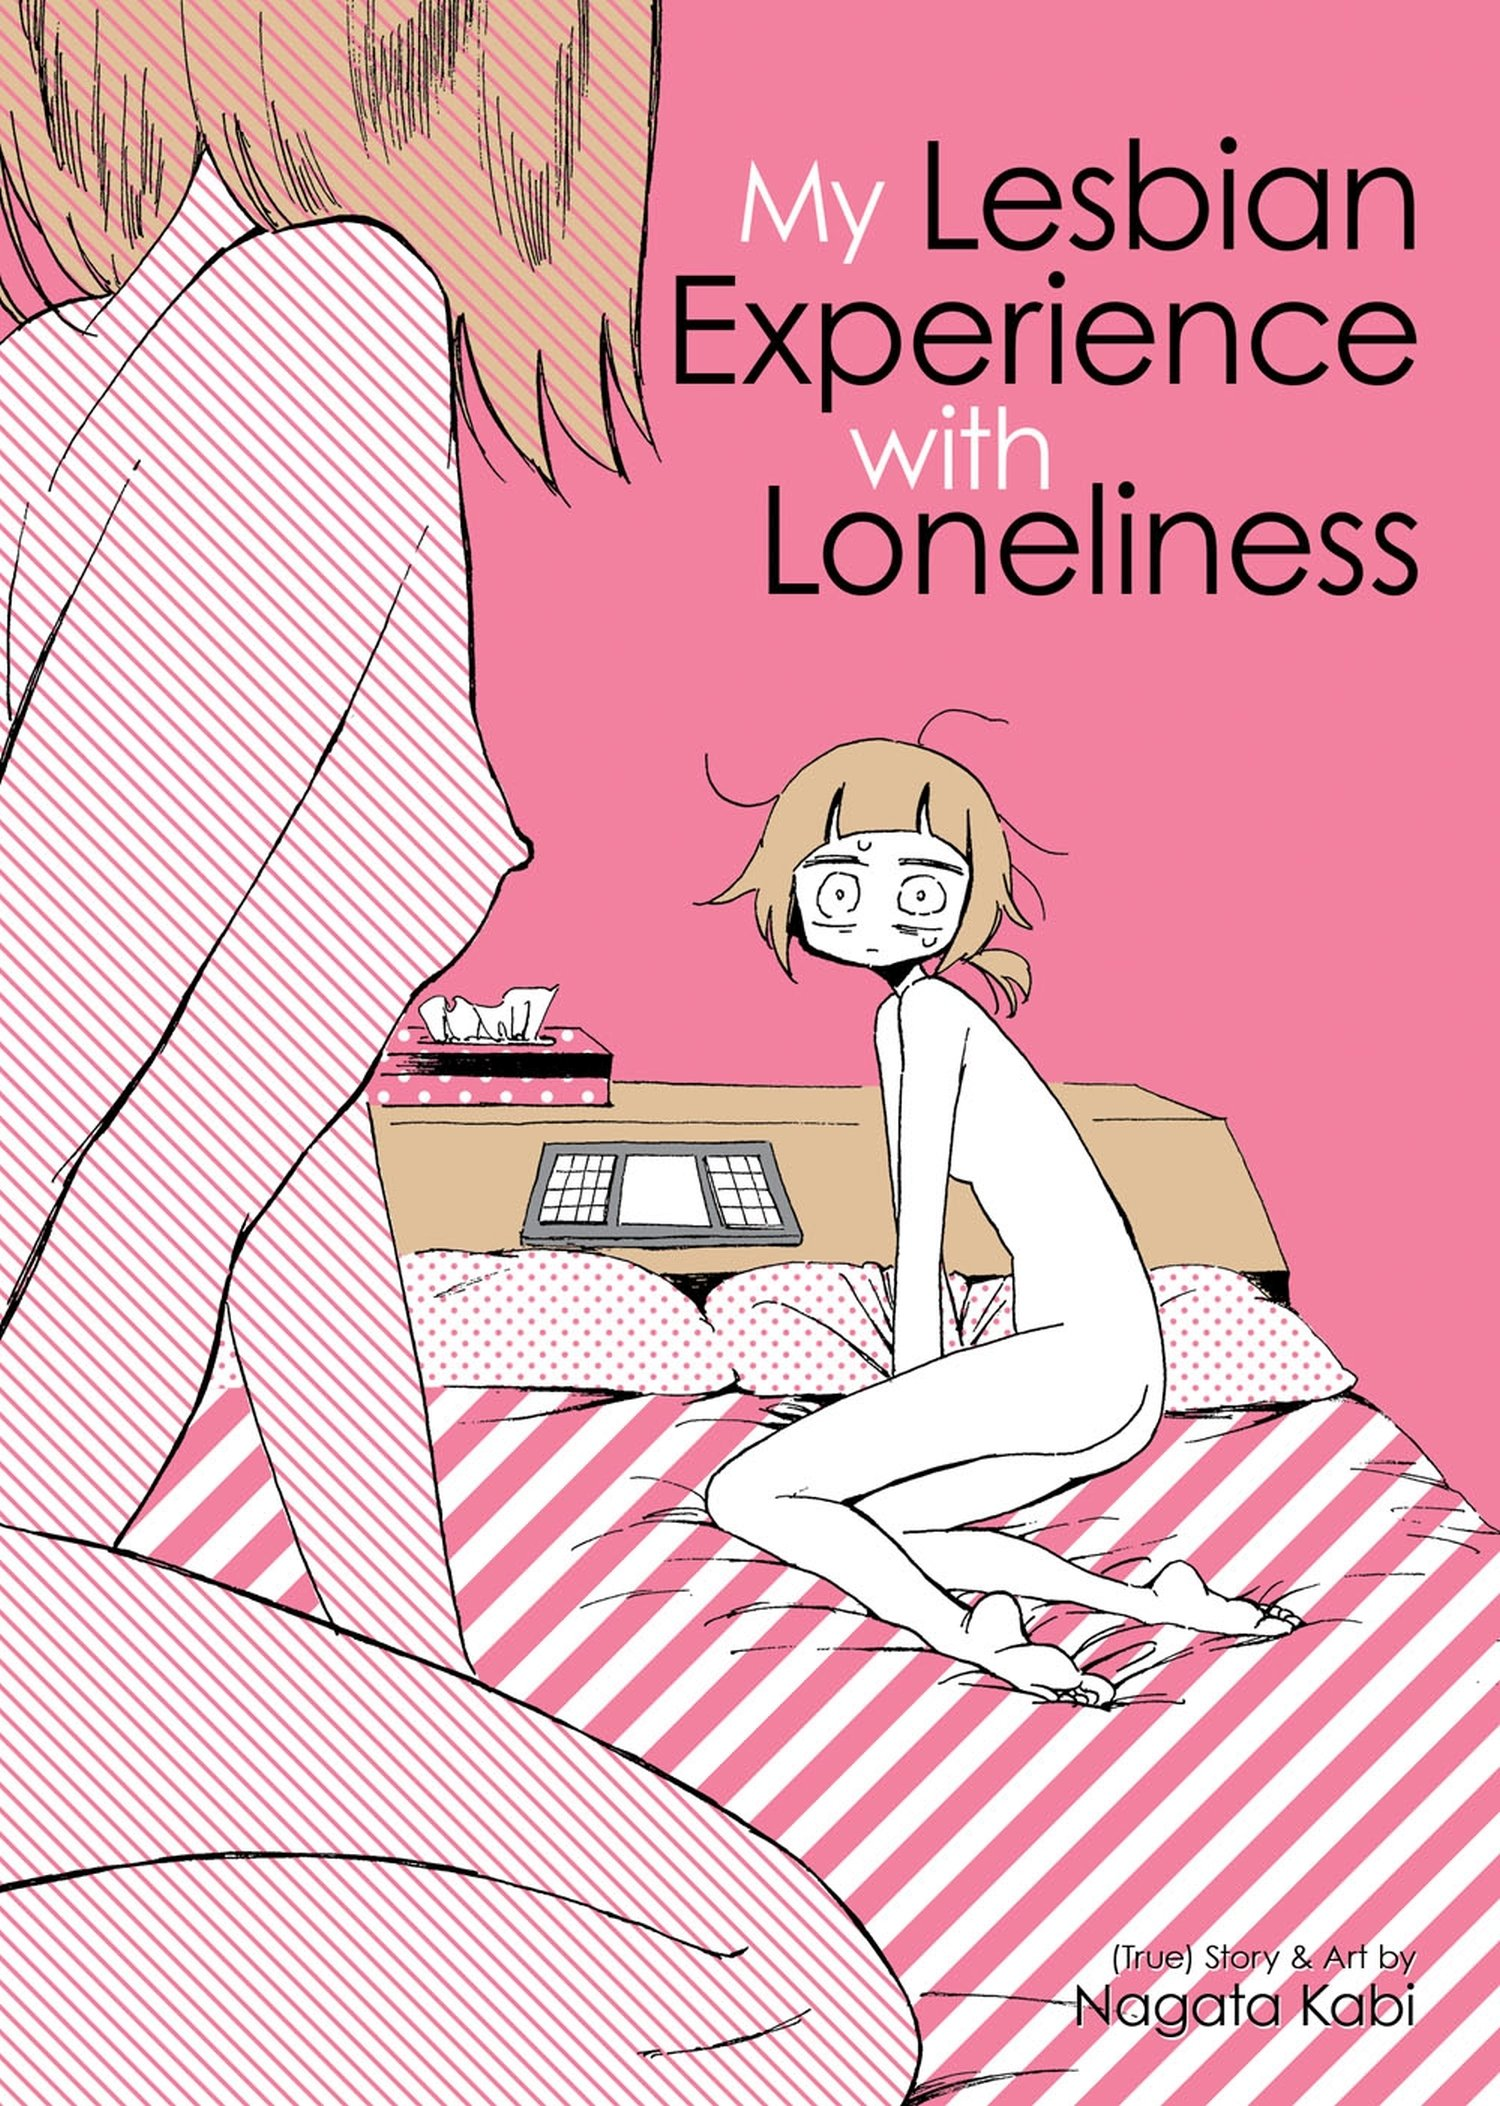 After Hours and My Lesbian Experience with Loneliness